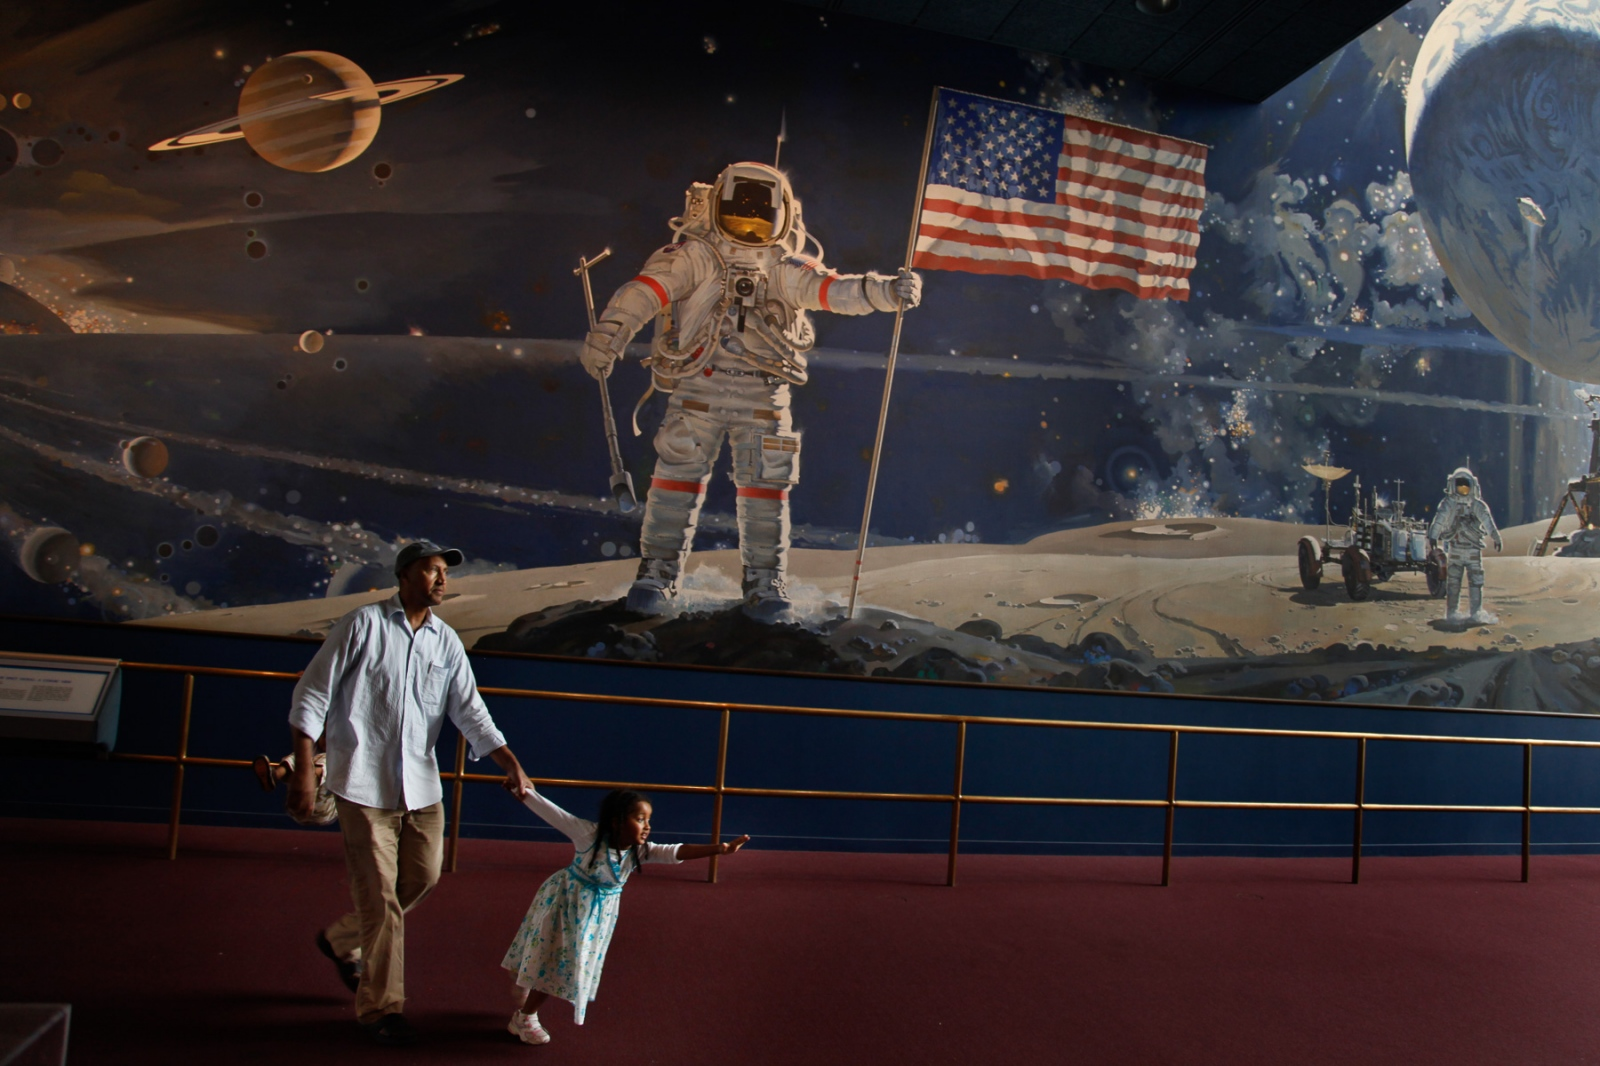 At the National Air and Space Museum a father walks his daughter past a mural showing the landing of Apollo 11 on the moon